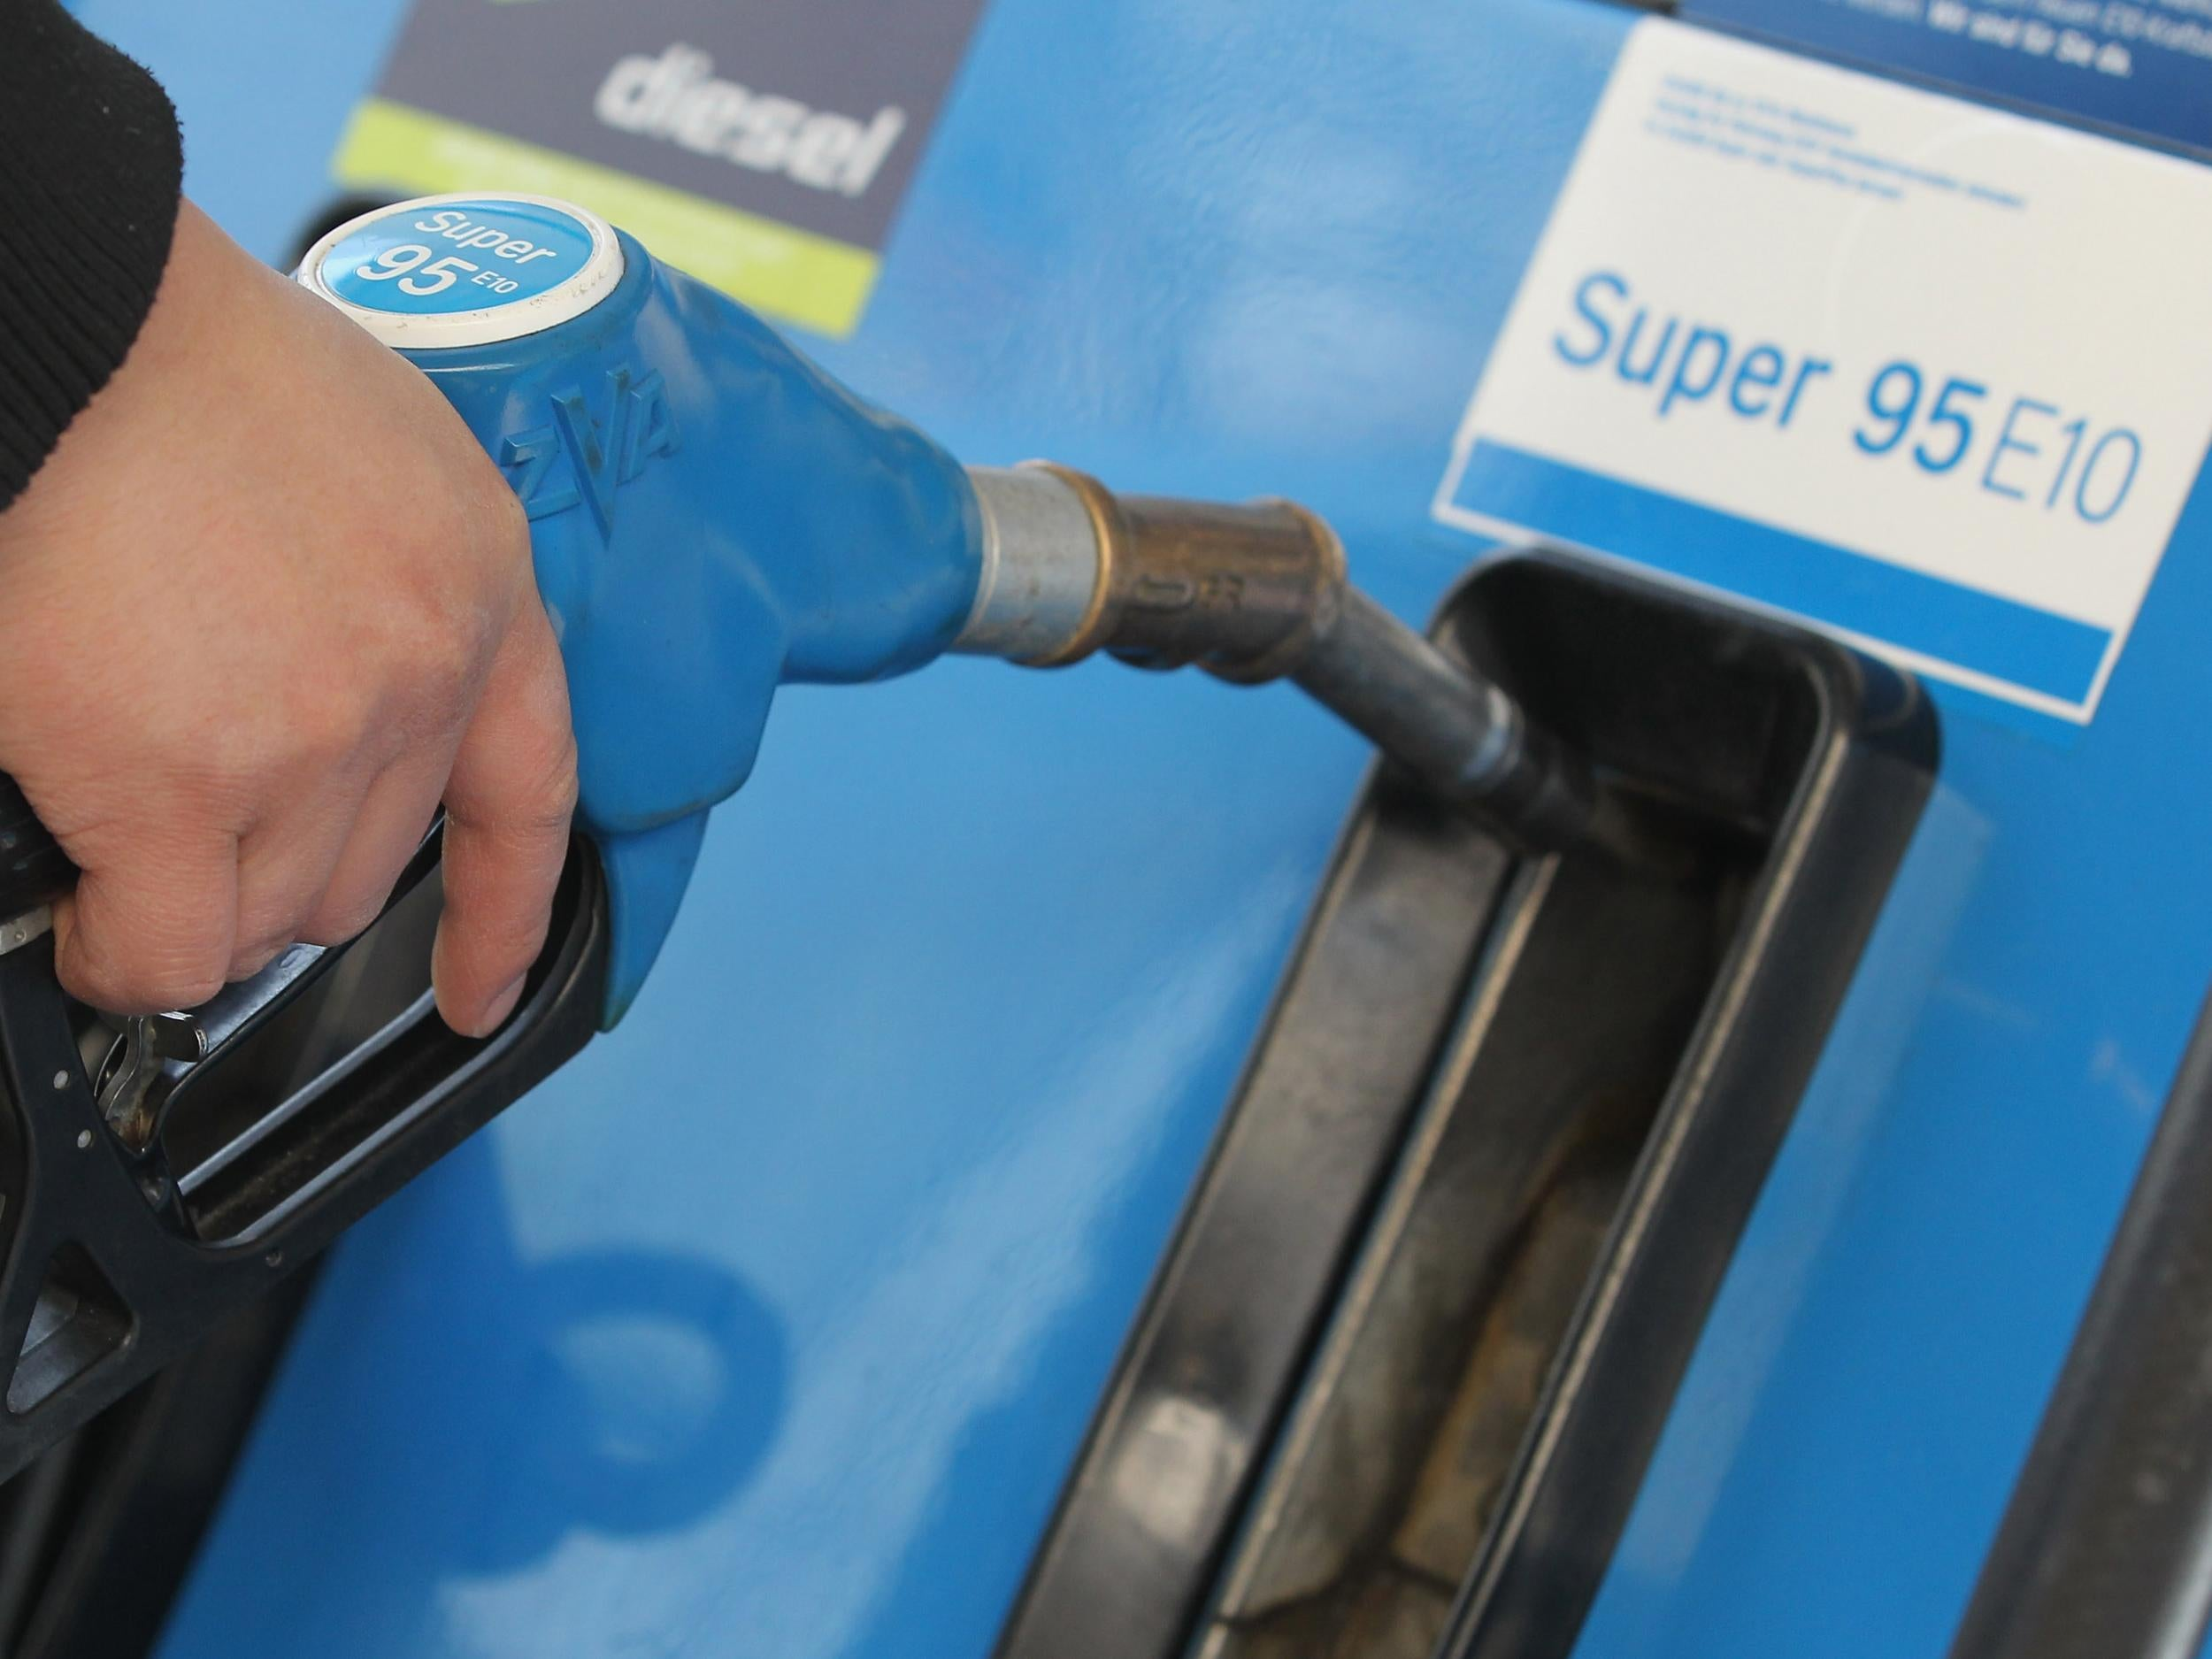 Fuel Prices - latest news, breaking stories and comment